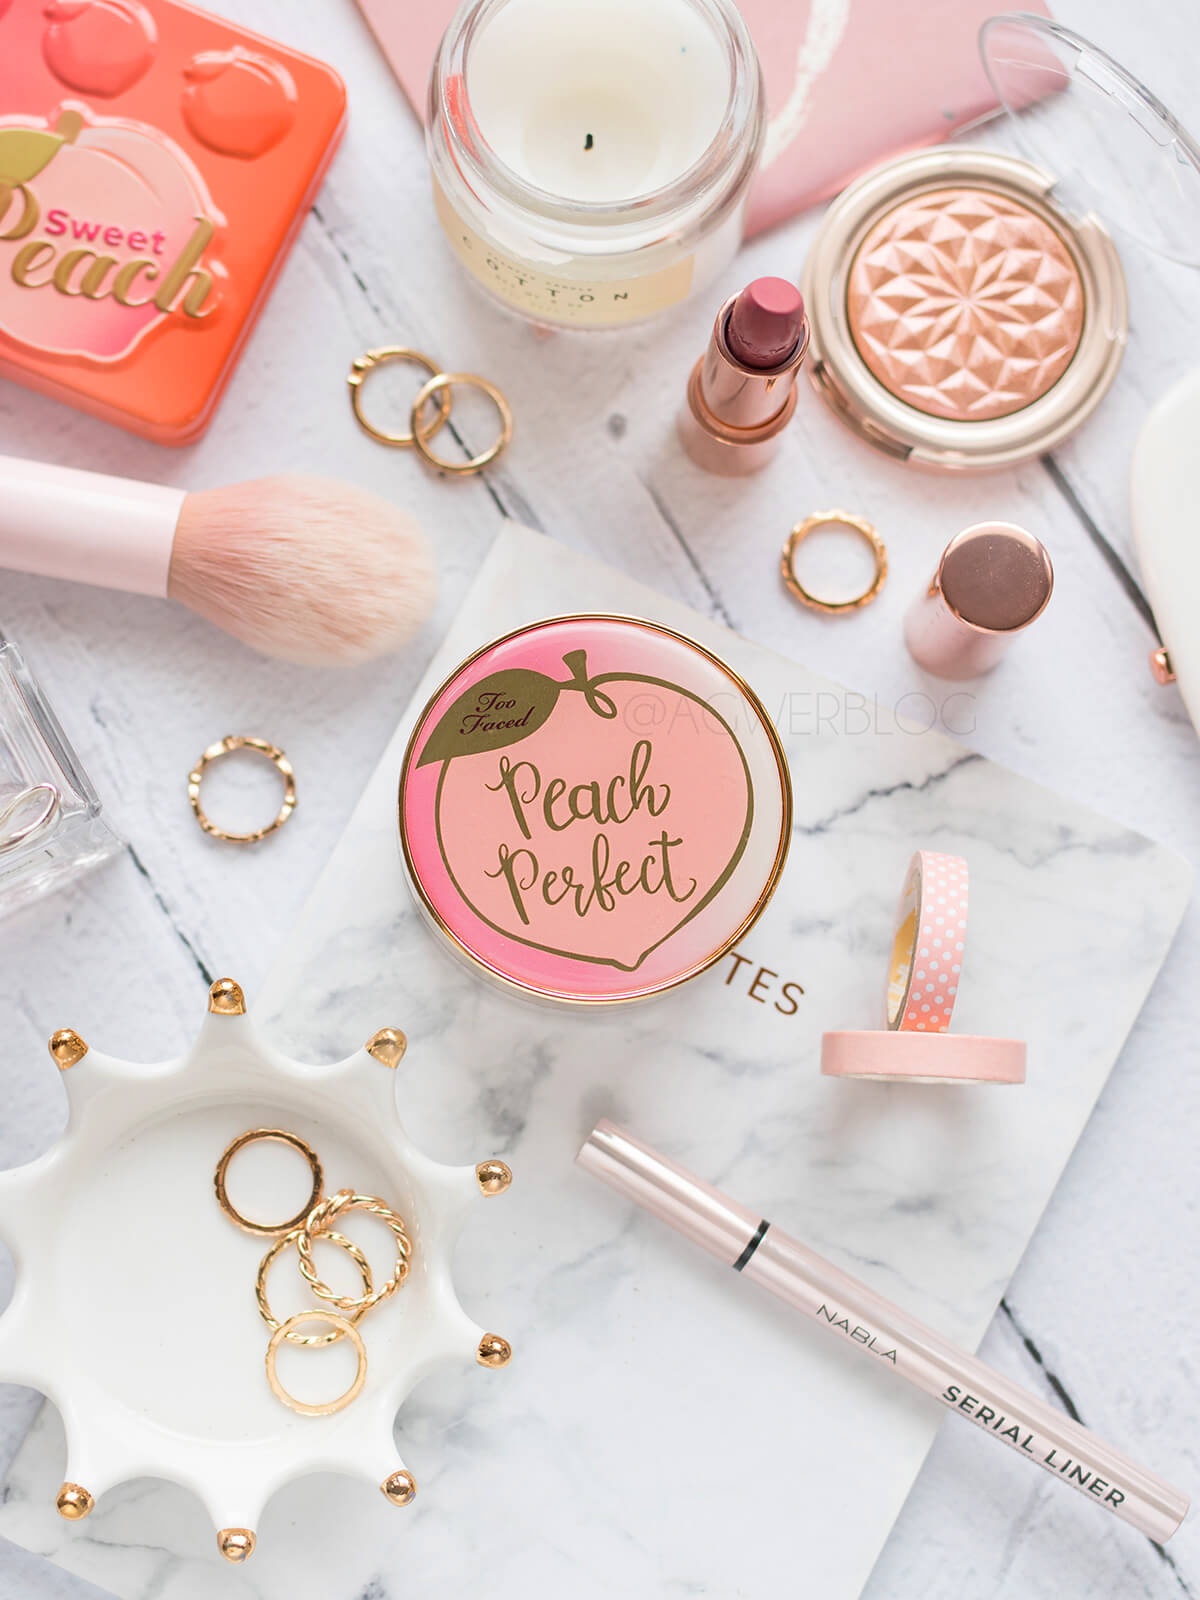 puder too faced peach perfect cena